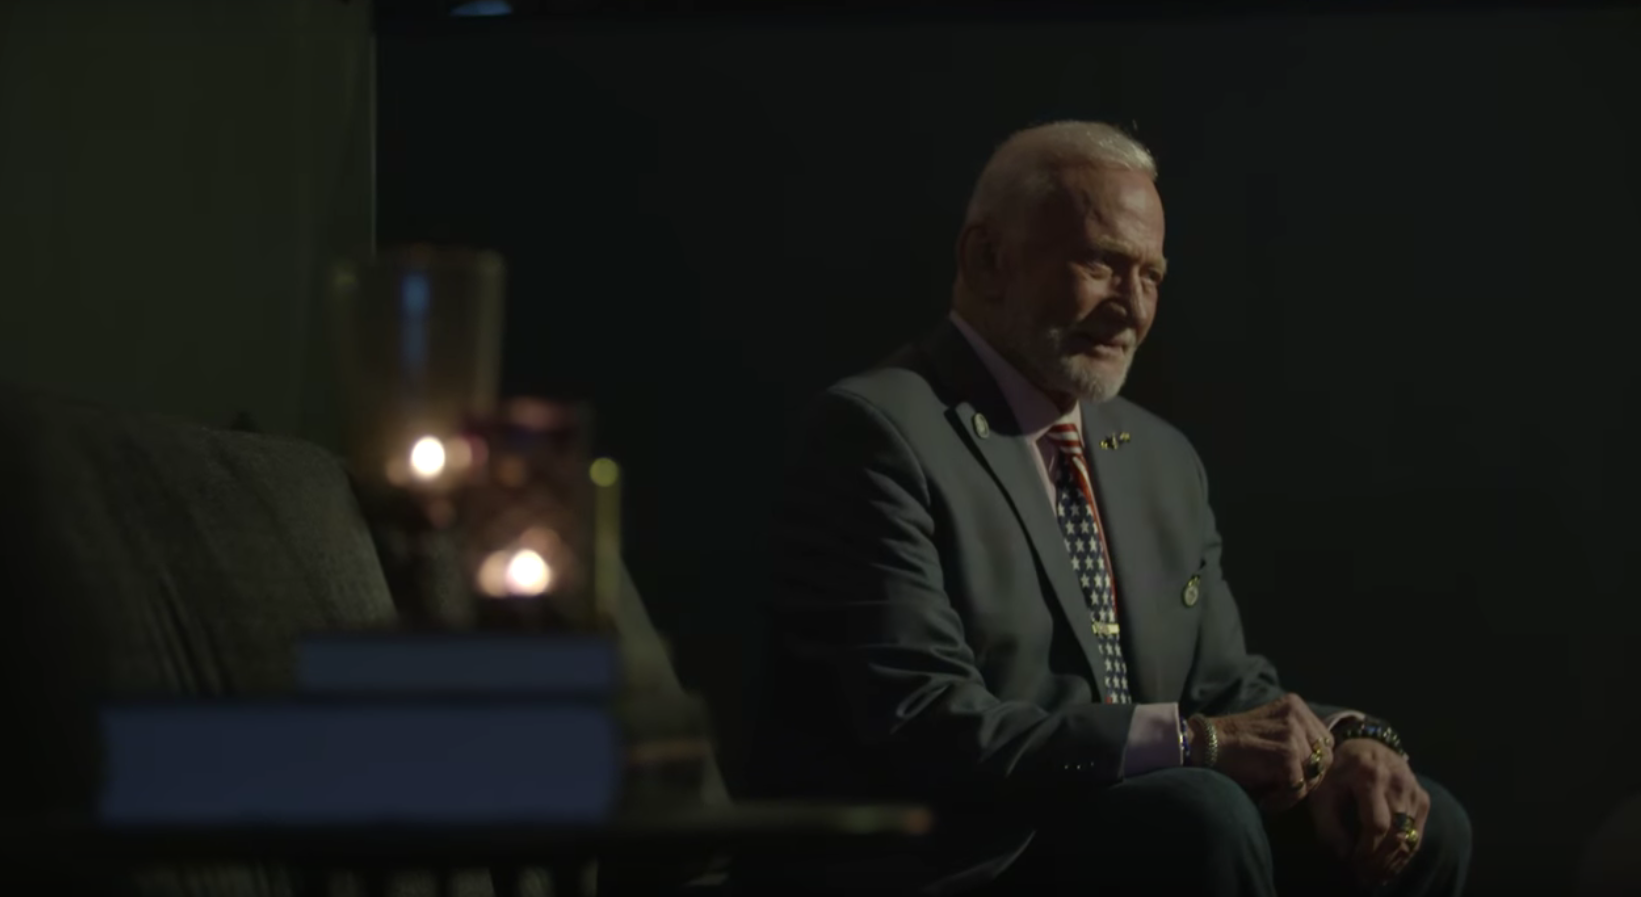 OMEGA House at Rio 2016 – Cocktails in Space with Buzz Aldrin